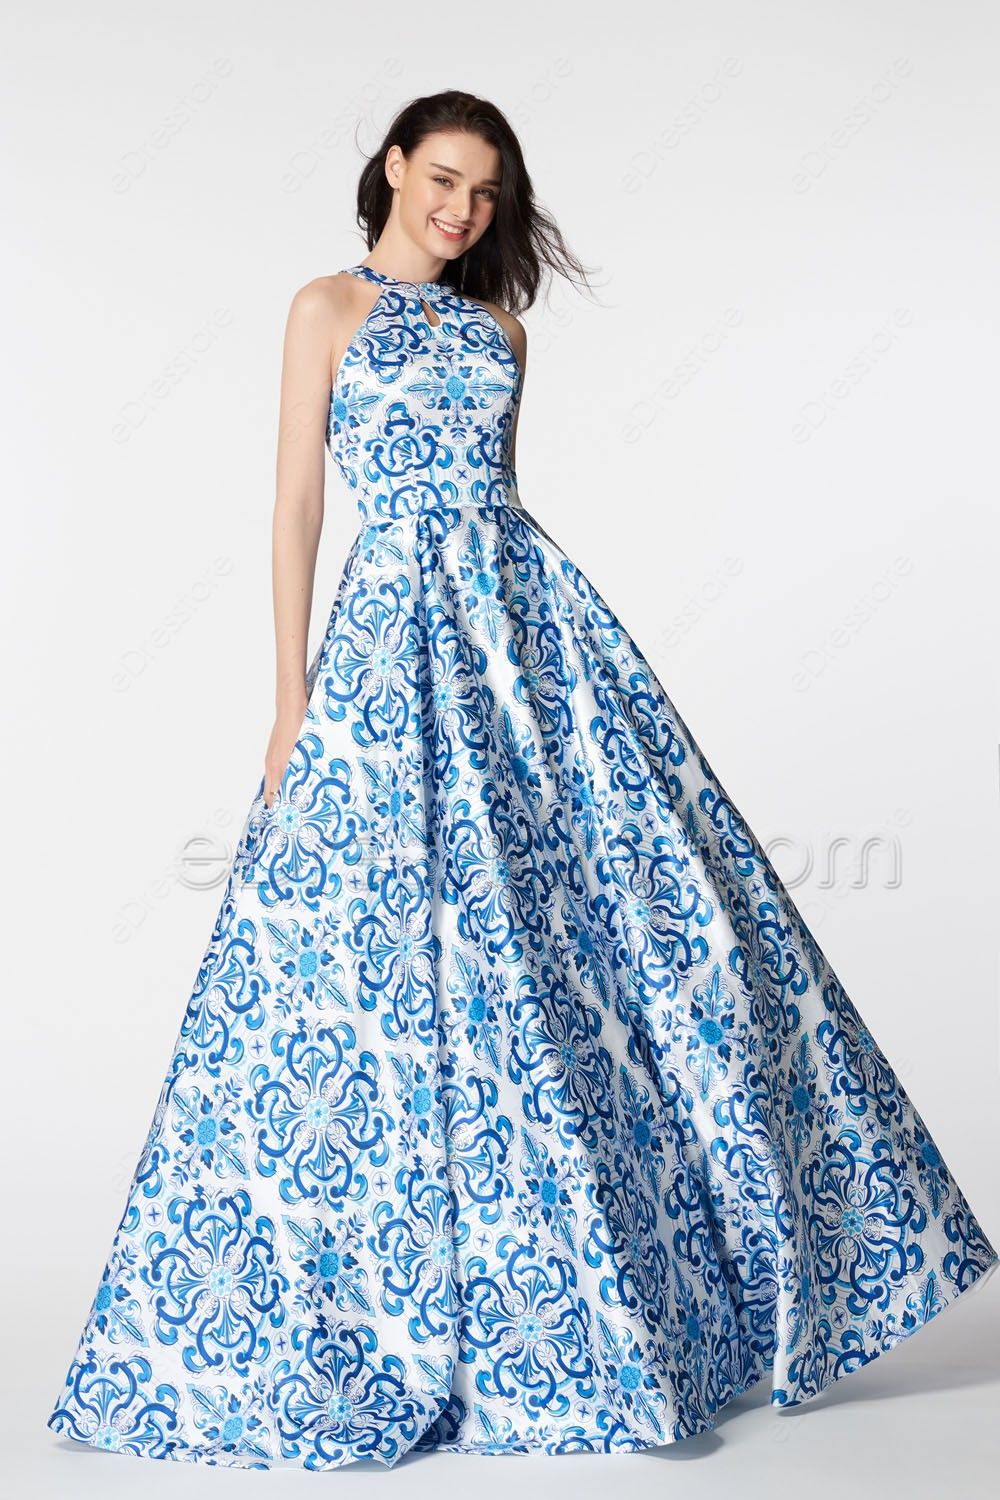 1220ae8f056d The blue printed prom dress features O neckline, and beautiful backless  design, ball gown skirt finishing with floor length.